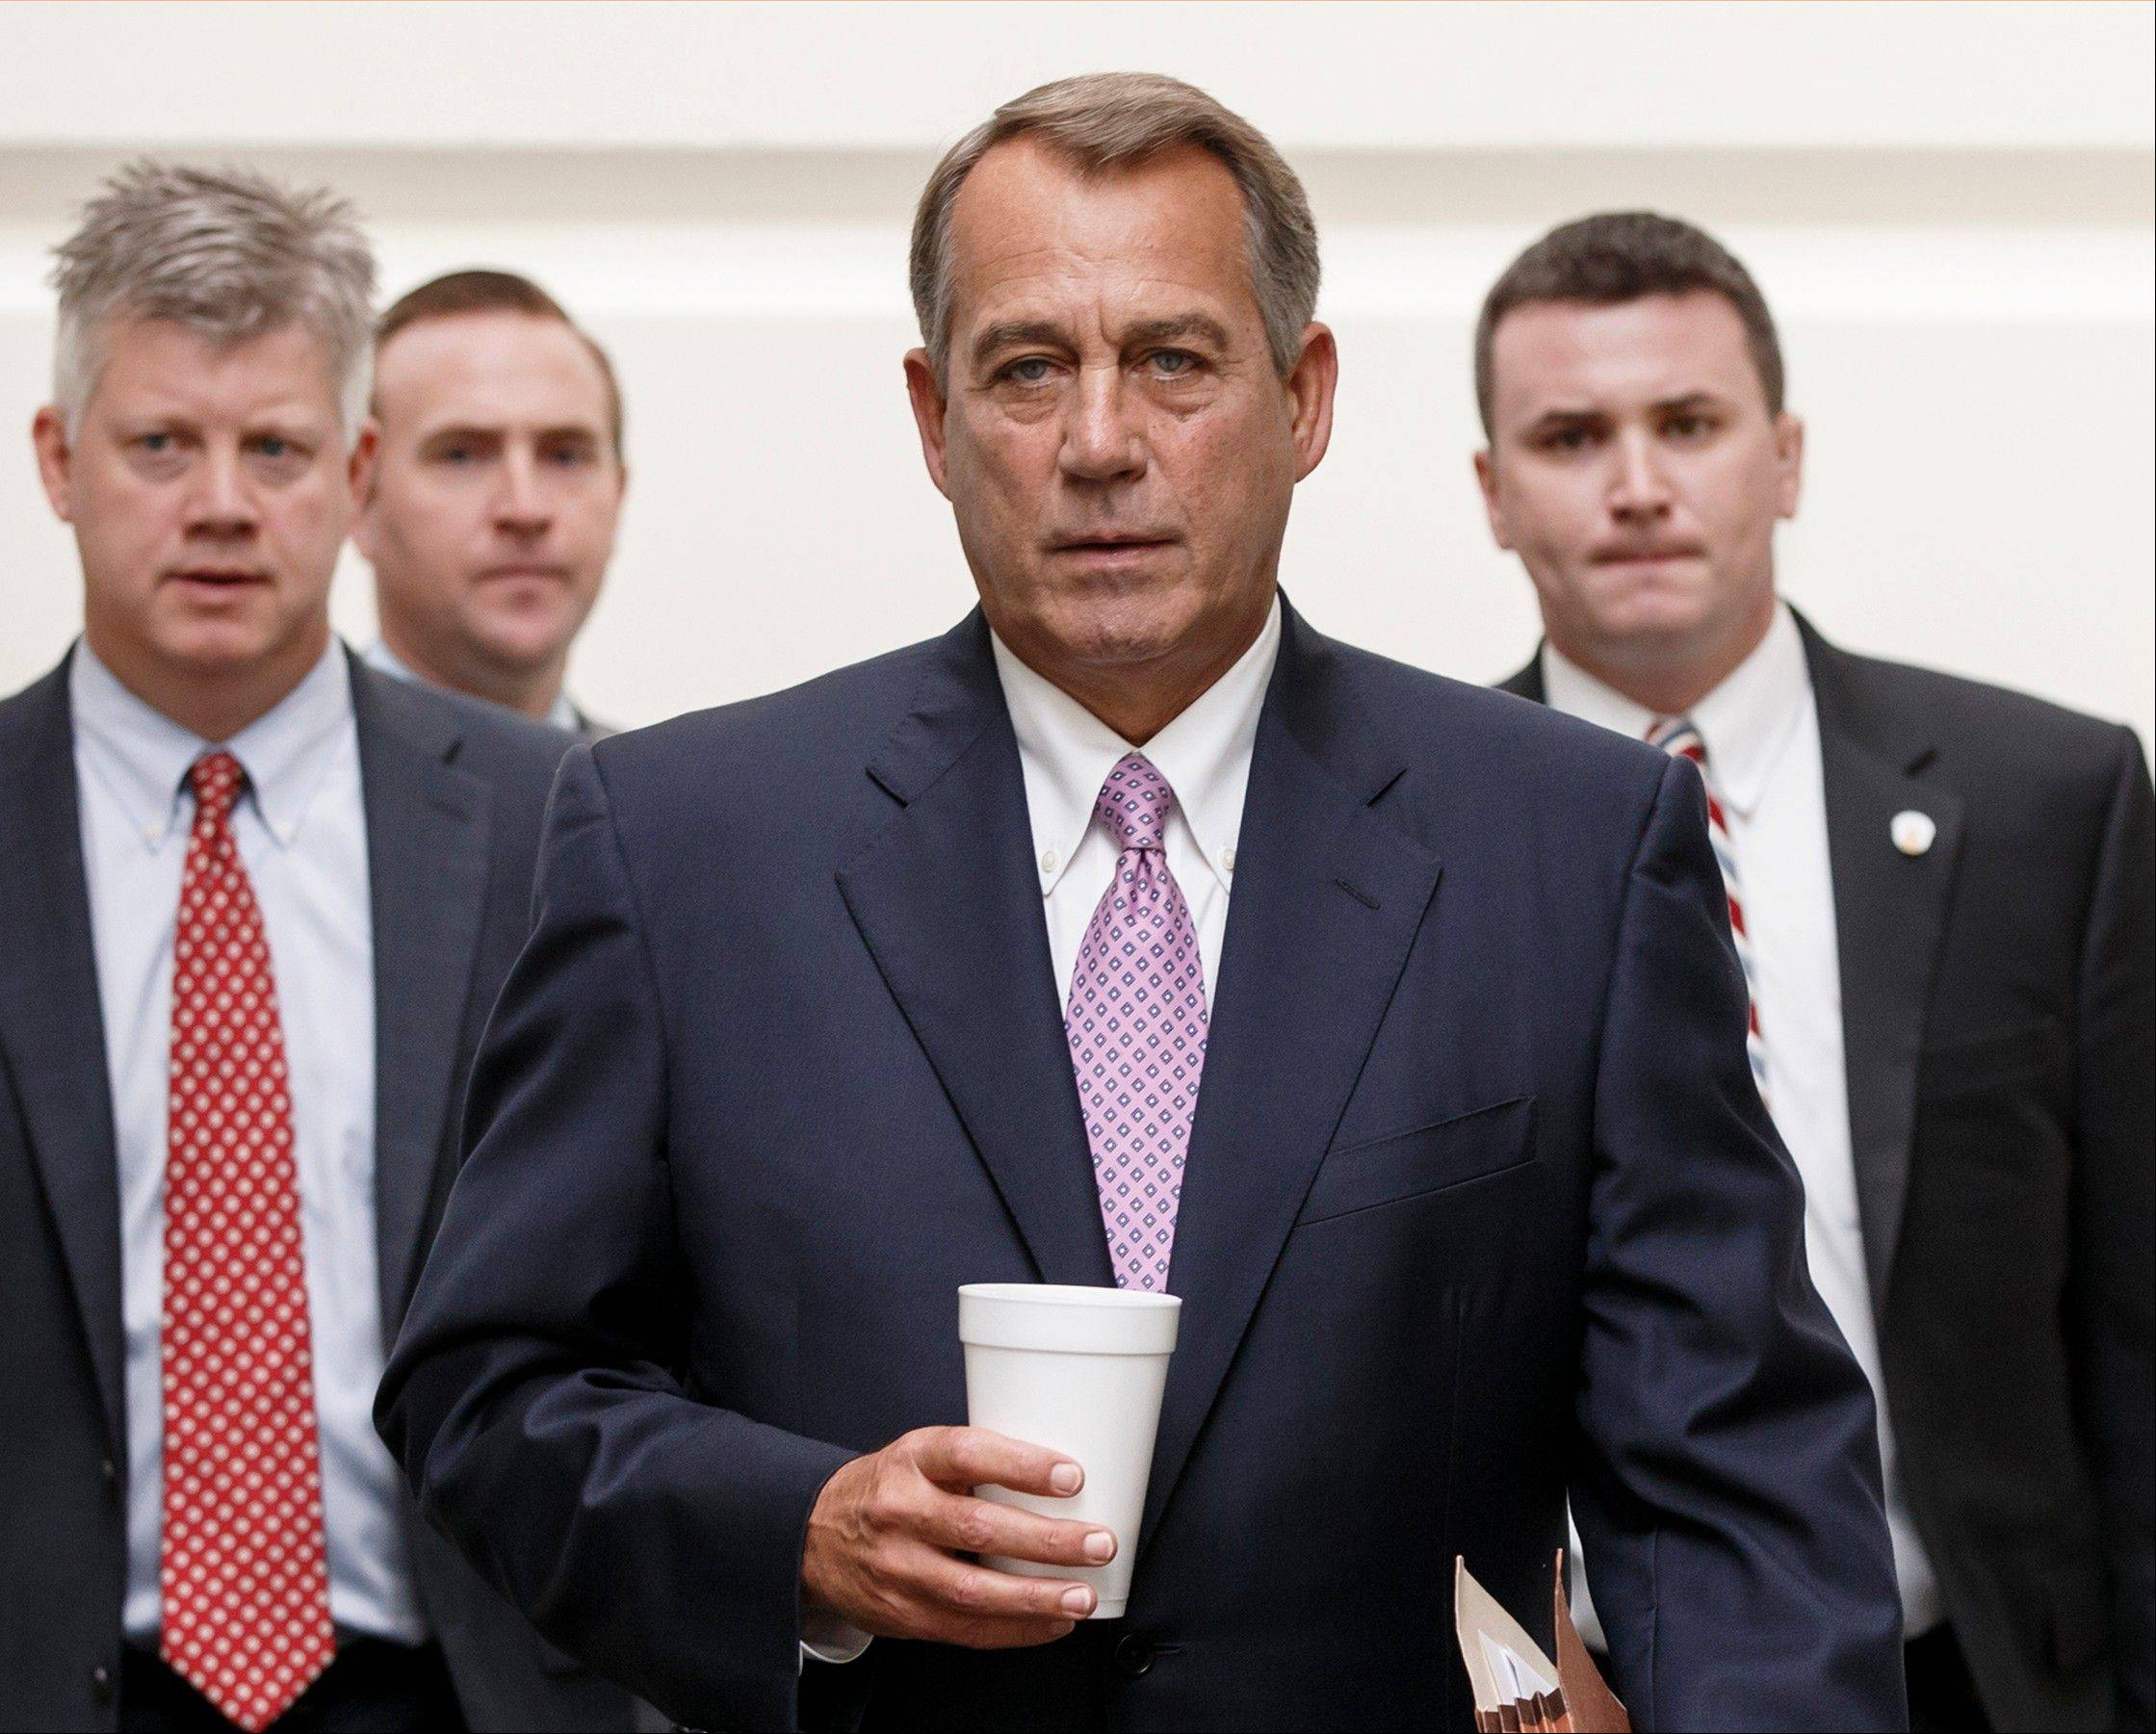 House Speaker John Boehner of Ohio walks to a Republican strategy session on Capitol Hill in Washington, Friday, Oct. 4, 2013. Boehner is struggling between Democrats that control the Senate and GOP conservatives in his caucus who insist any funding legislation must also kill or delay the nation's new health care law. Added pressure came from President Barack Obama who pointedly blamed Boehner on Thursday for keeping federal agencies closed.